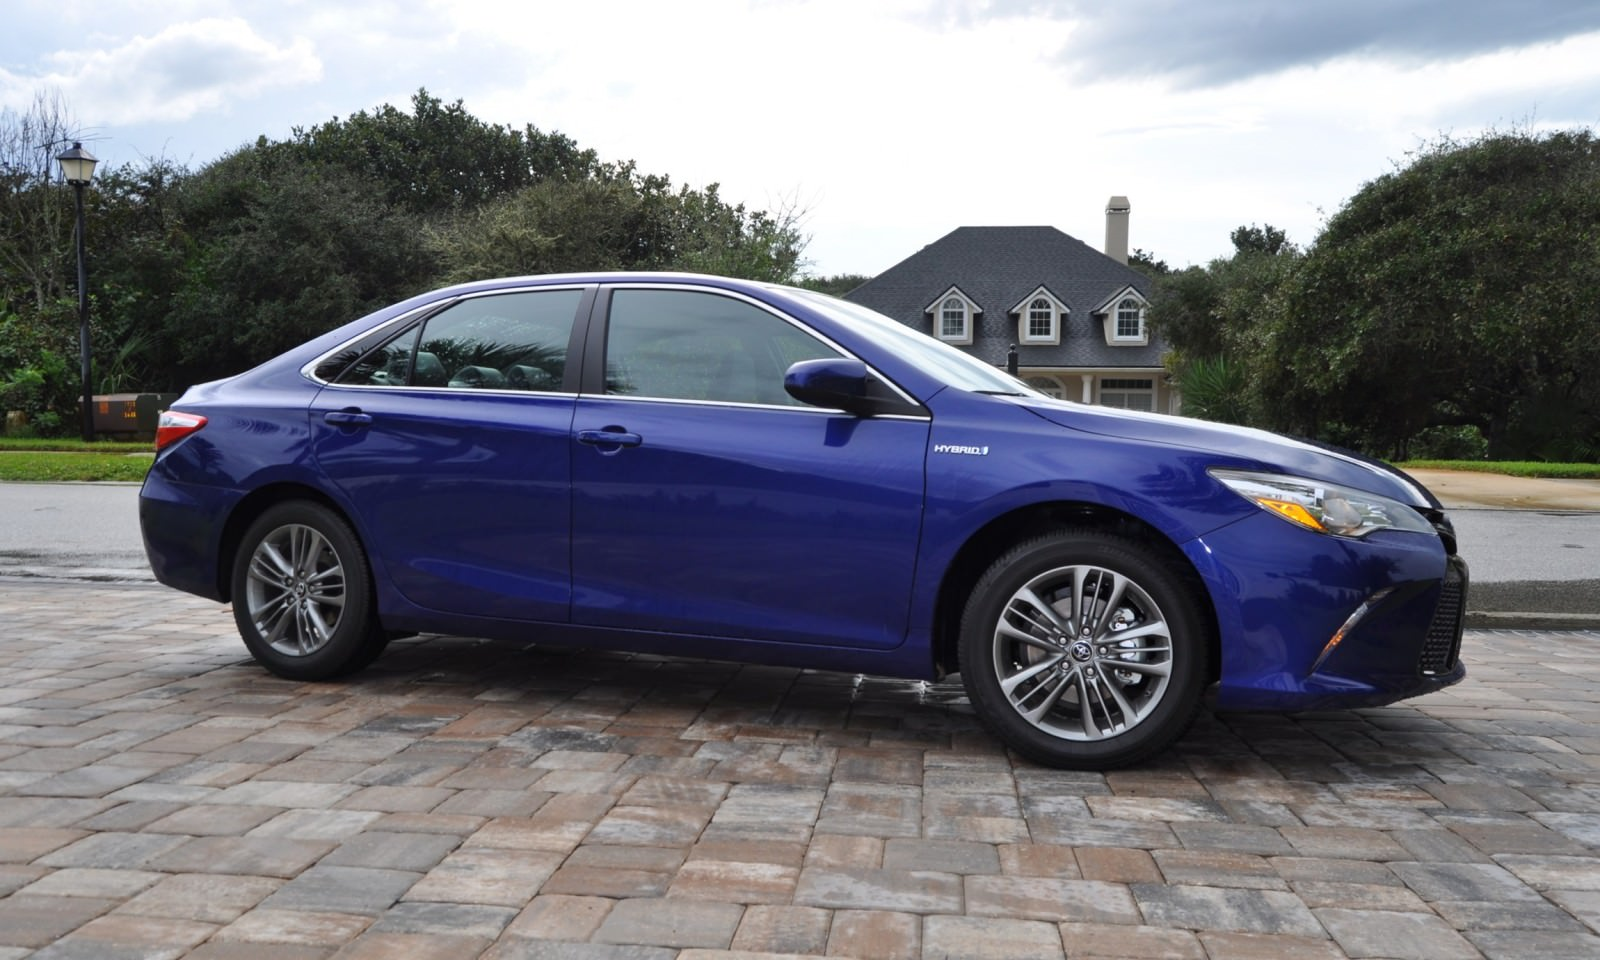 Awesome 2015 Toyota Camry SE Hybrid Review